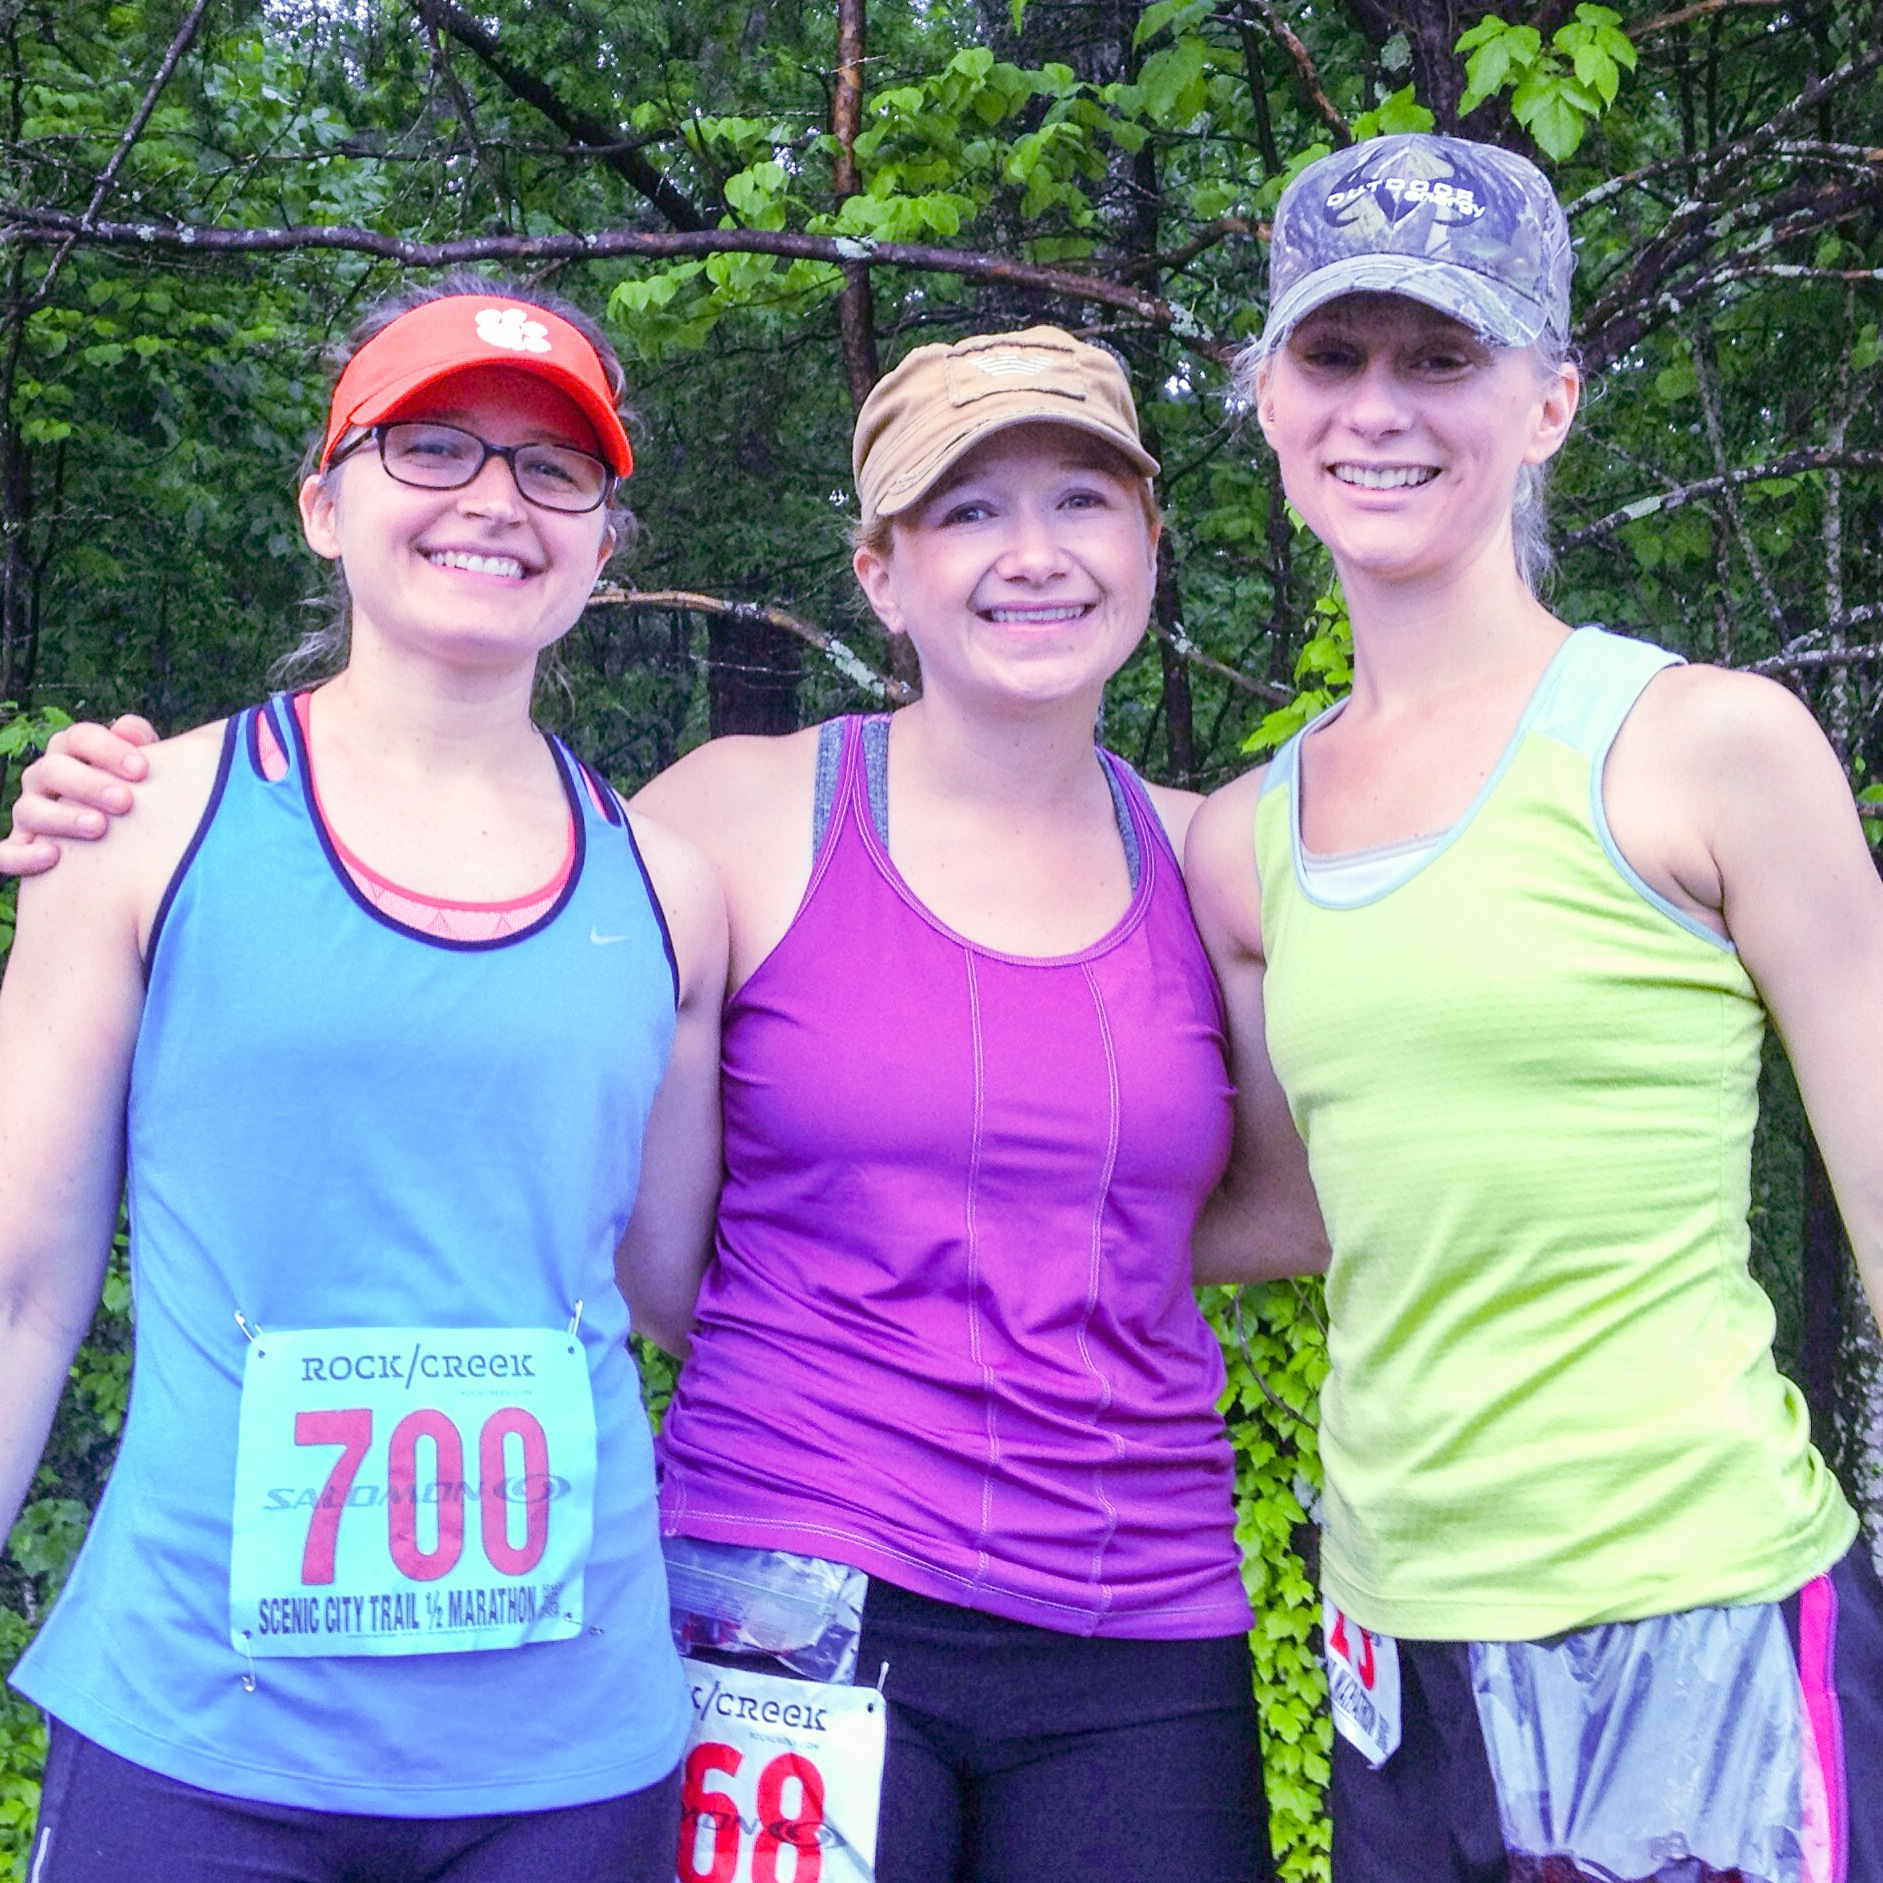 Scenic City Trail Half Marathon with Donica and Jewly, May 2013